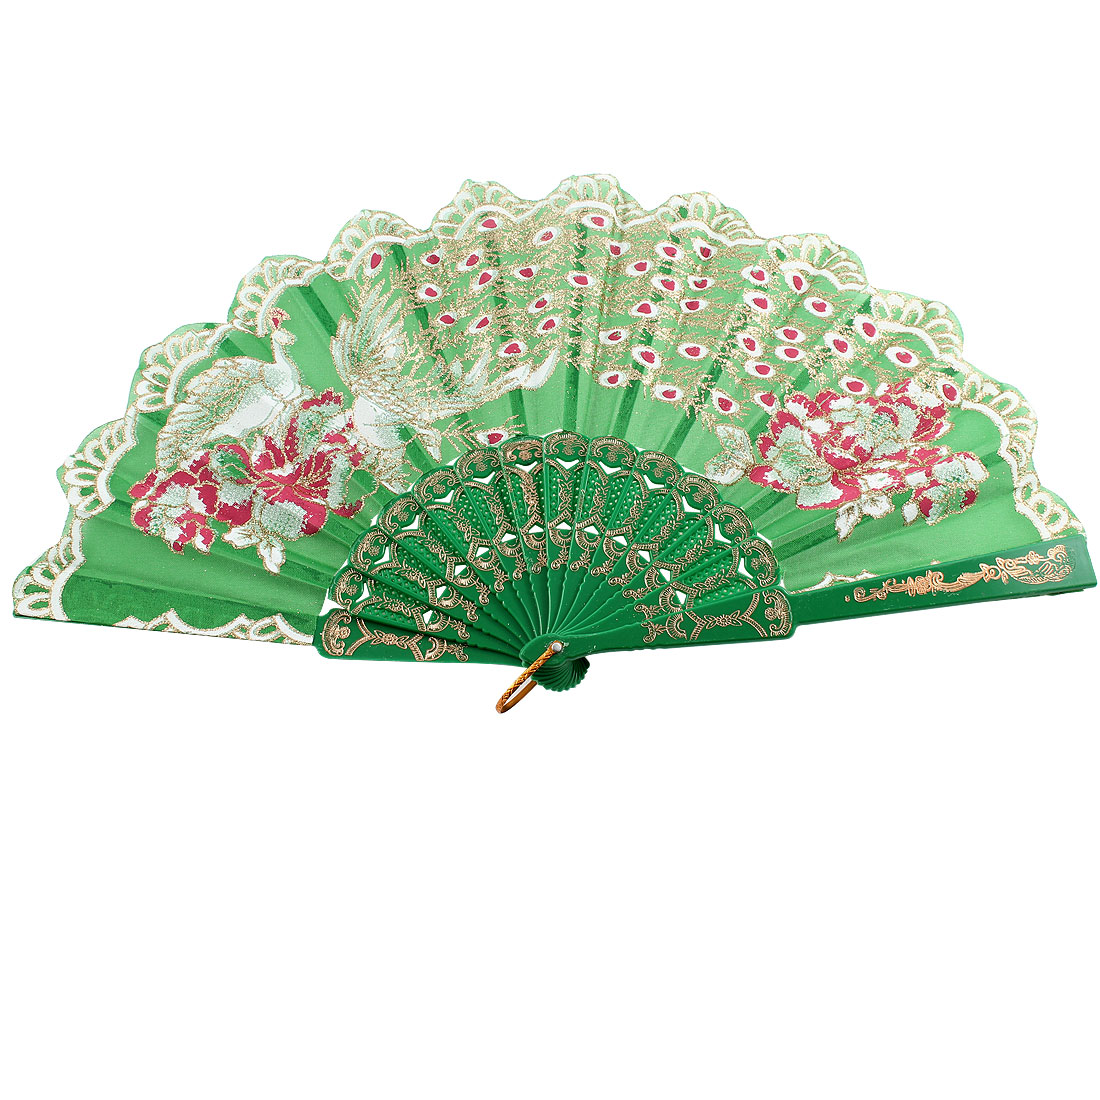 Glittery Powder Accent Peacock Print Flower Rim Handheld Hand Fan Green